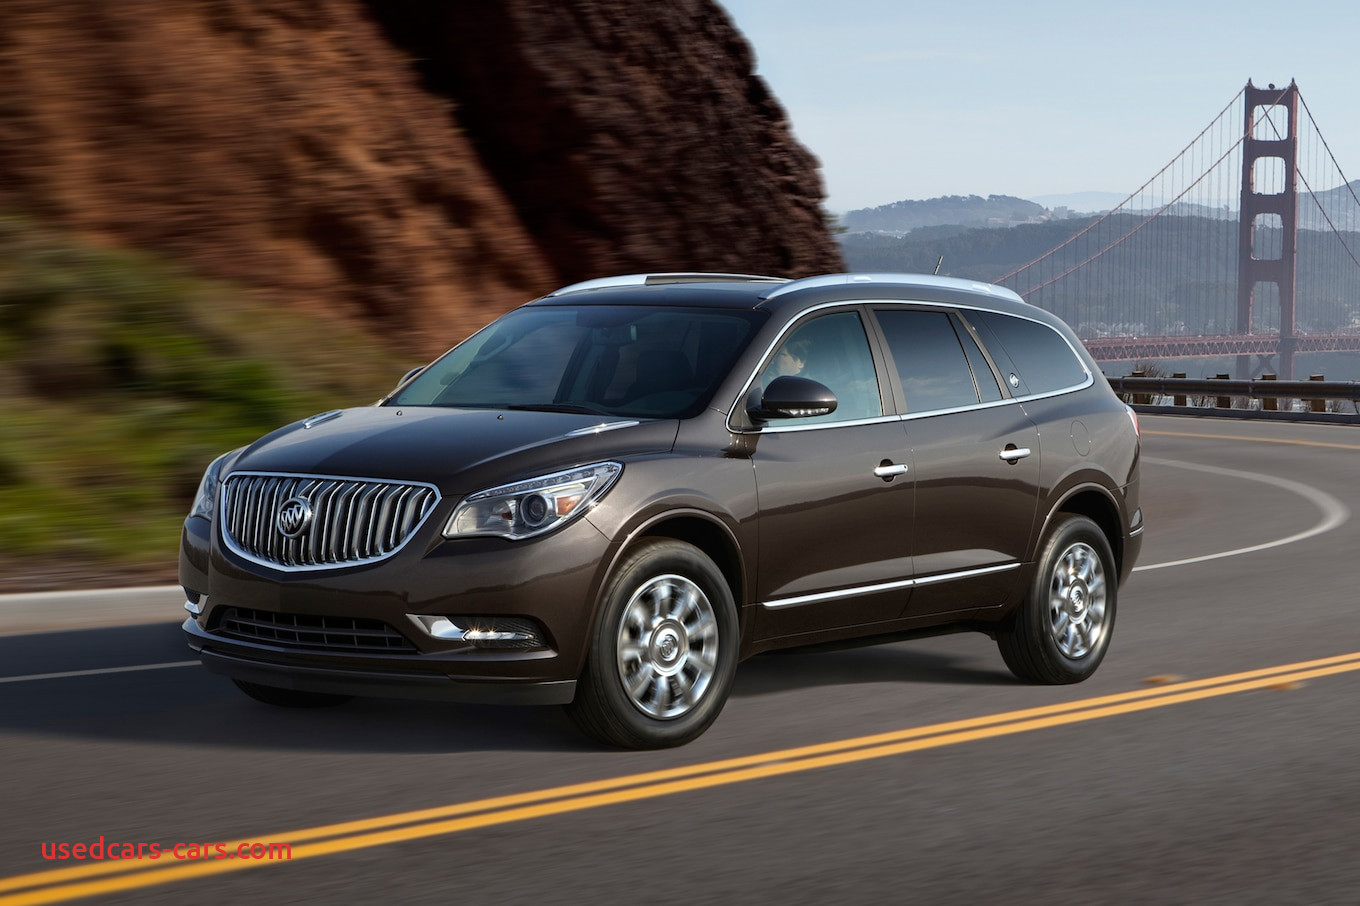 Buick Enclave Reviews New 2014 Buick Enclave Reviews and Rating Motor Trend